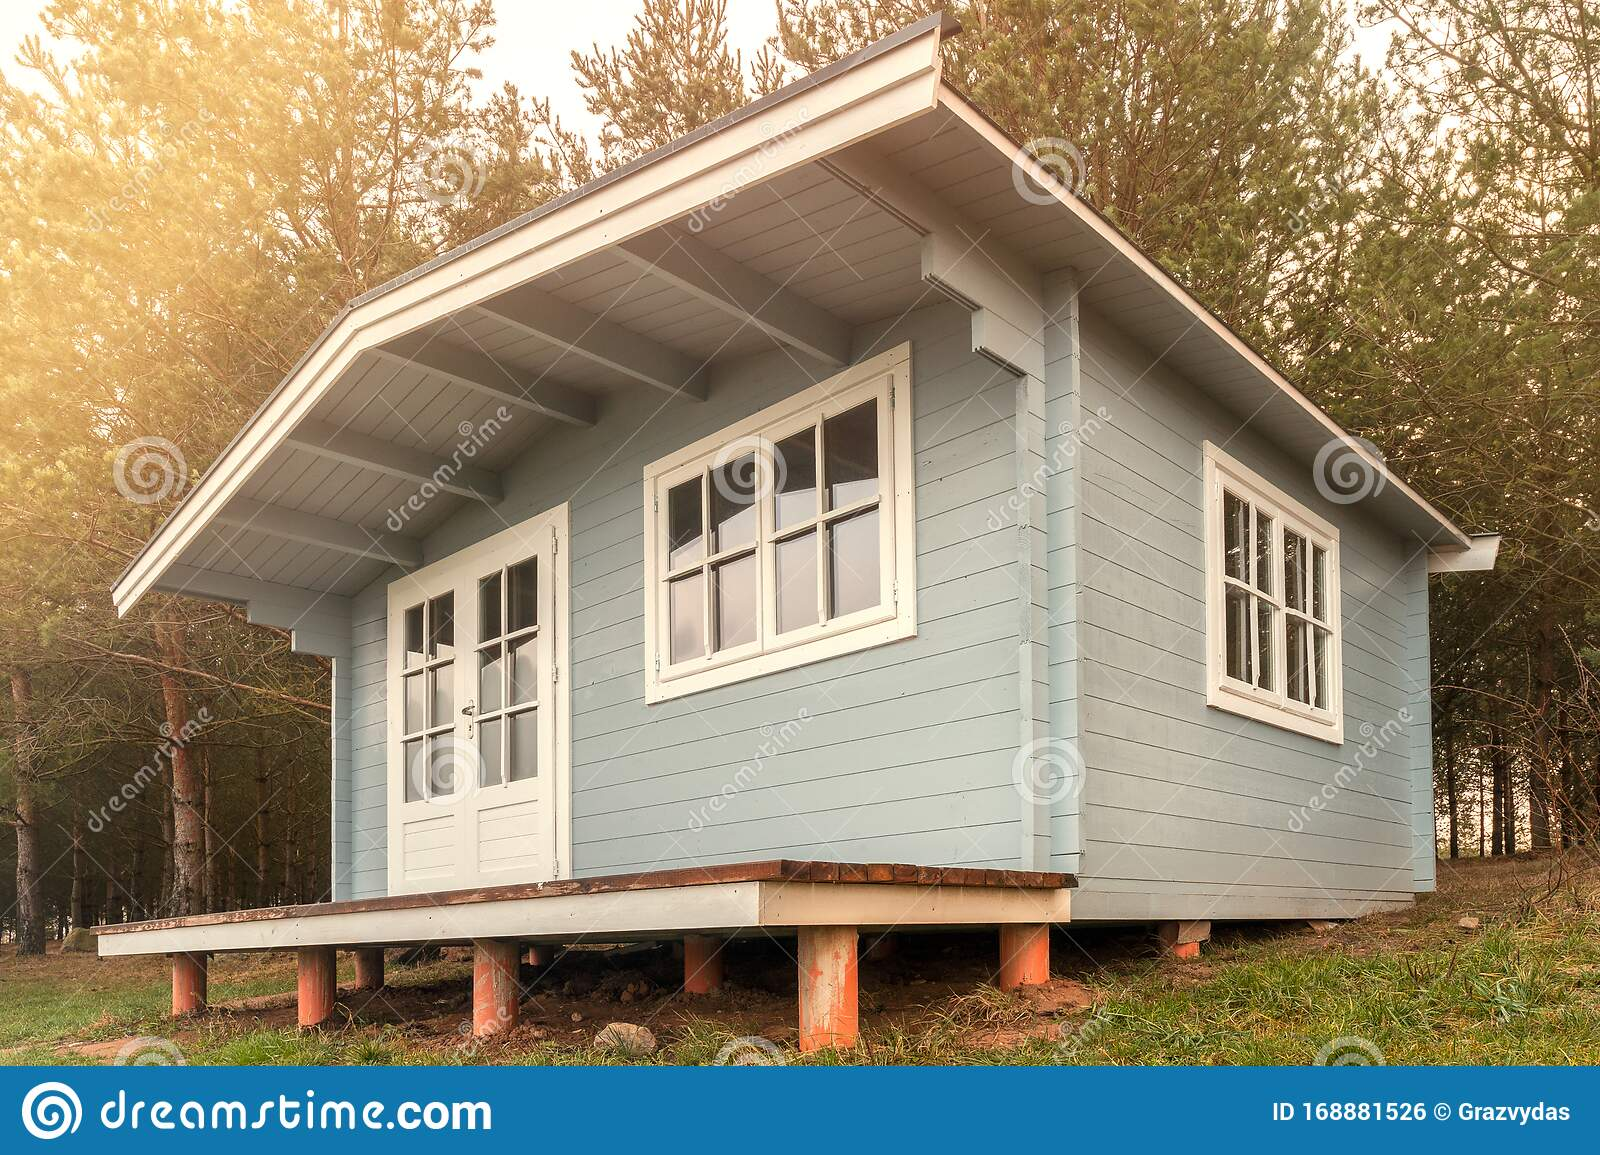 Ecological Small Wooden House Stock Photo Image Of Wooden Nature 168881526